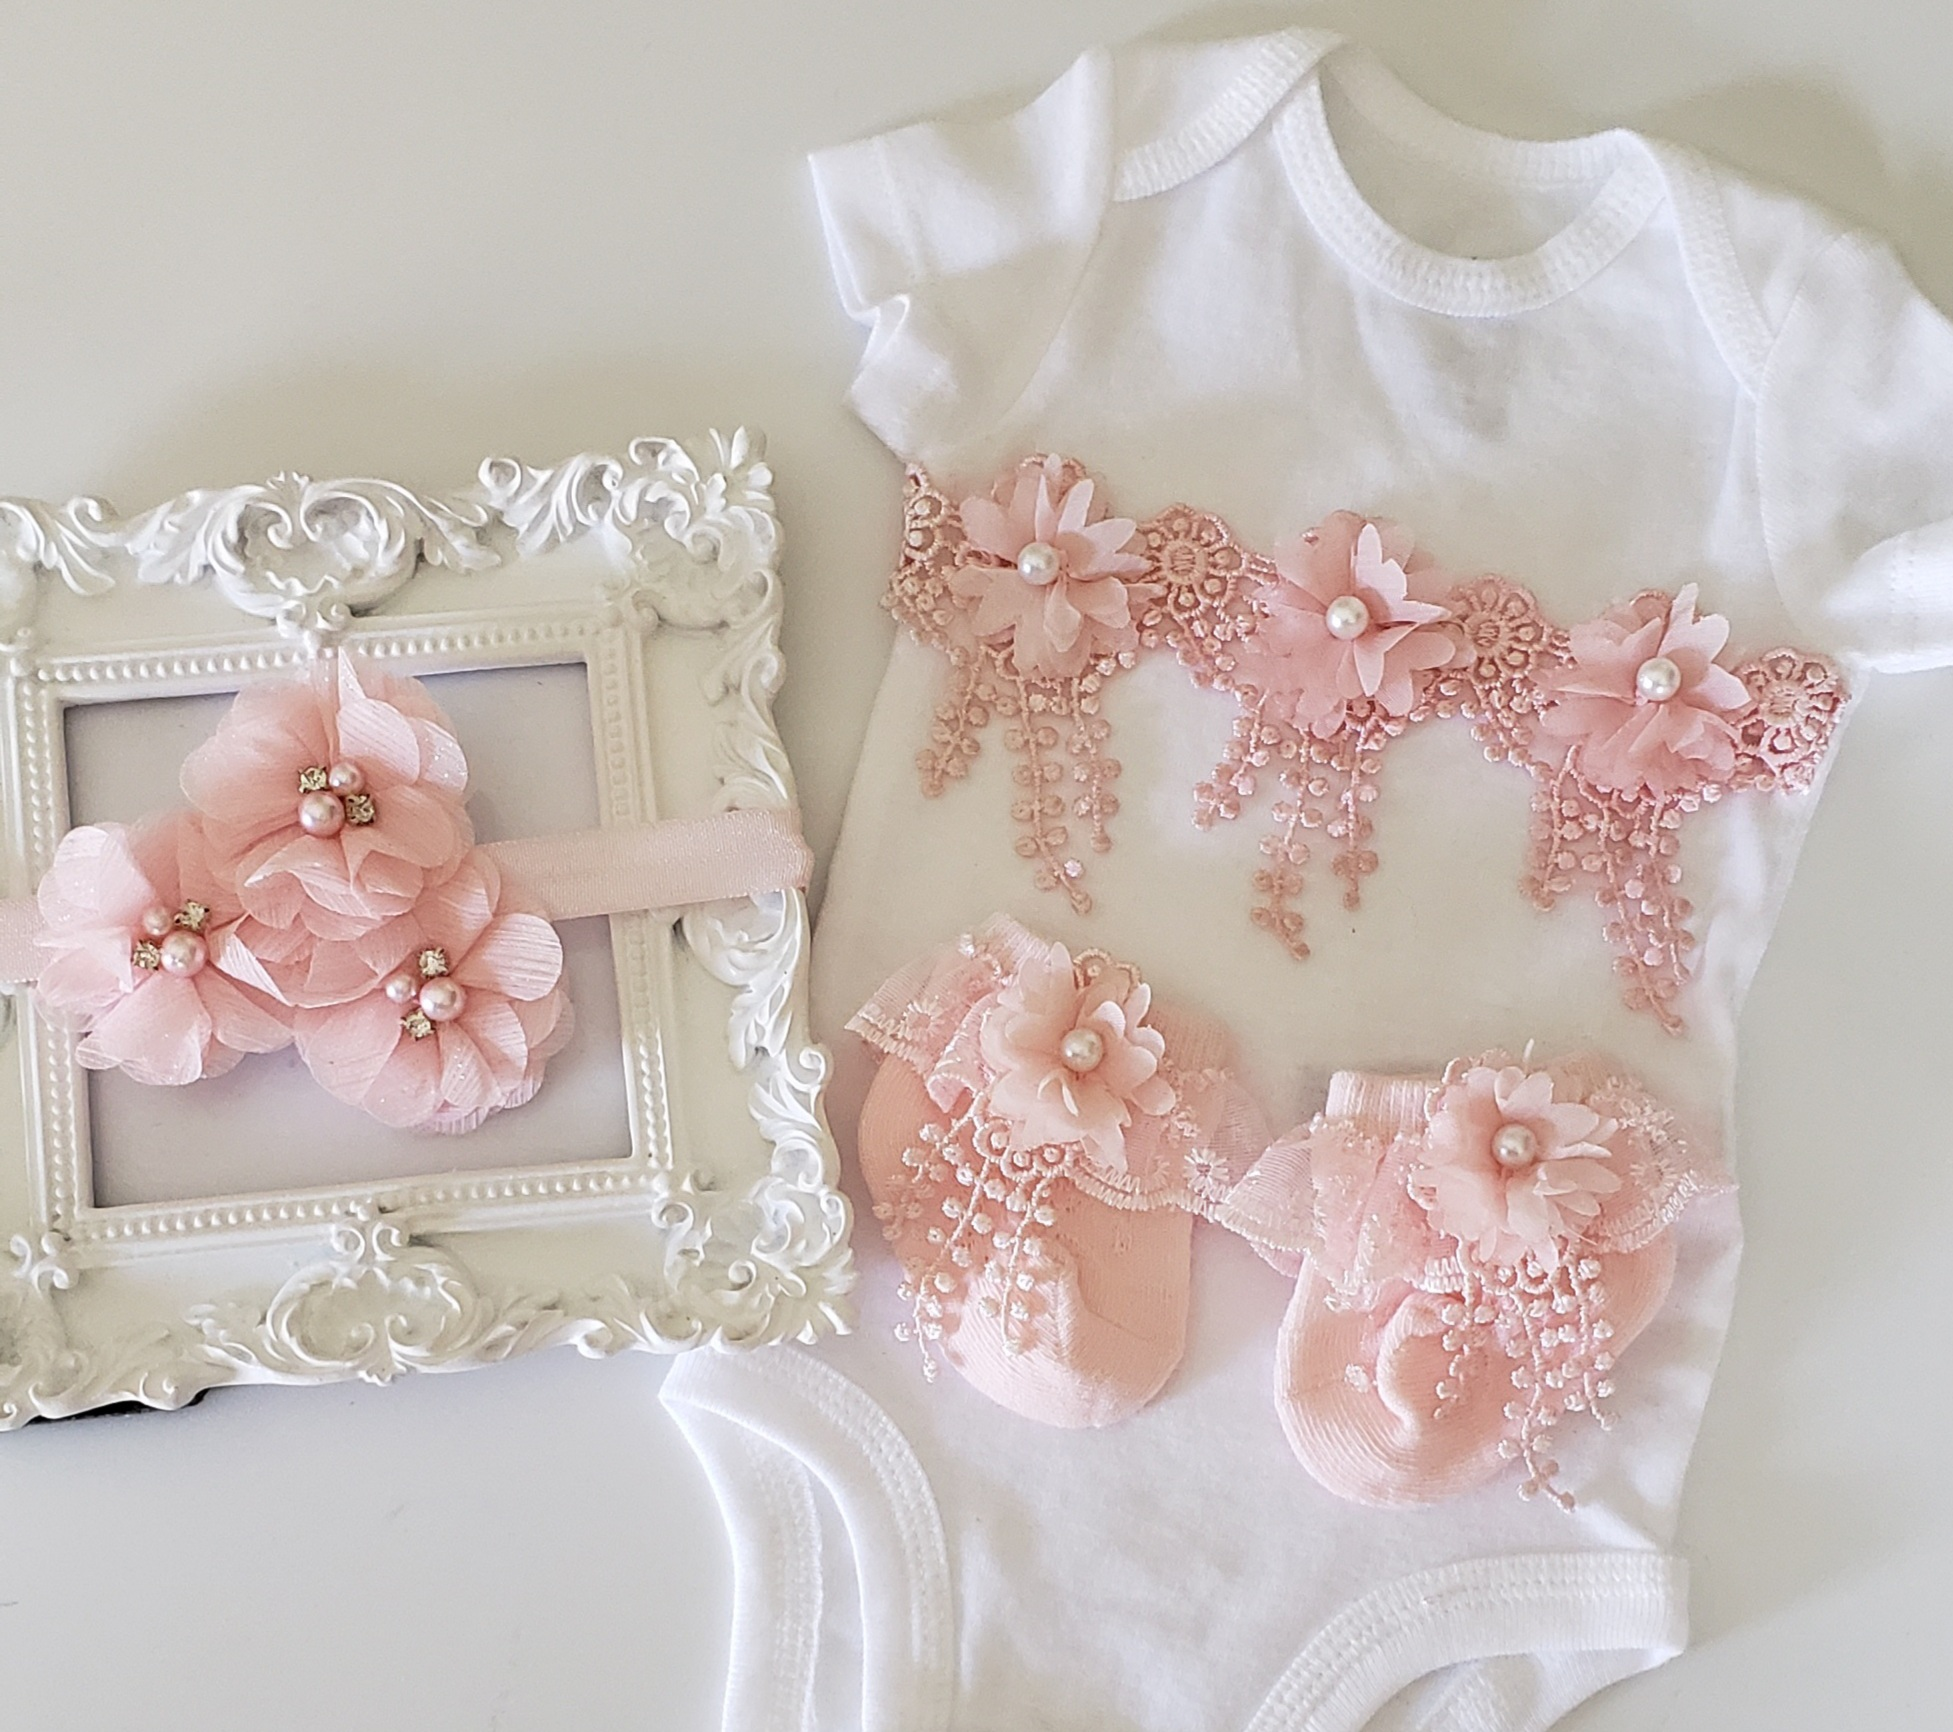 onesie-set-pink-lace-ss-pic-1.jpg